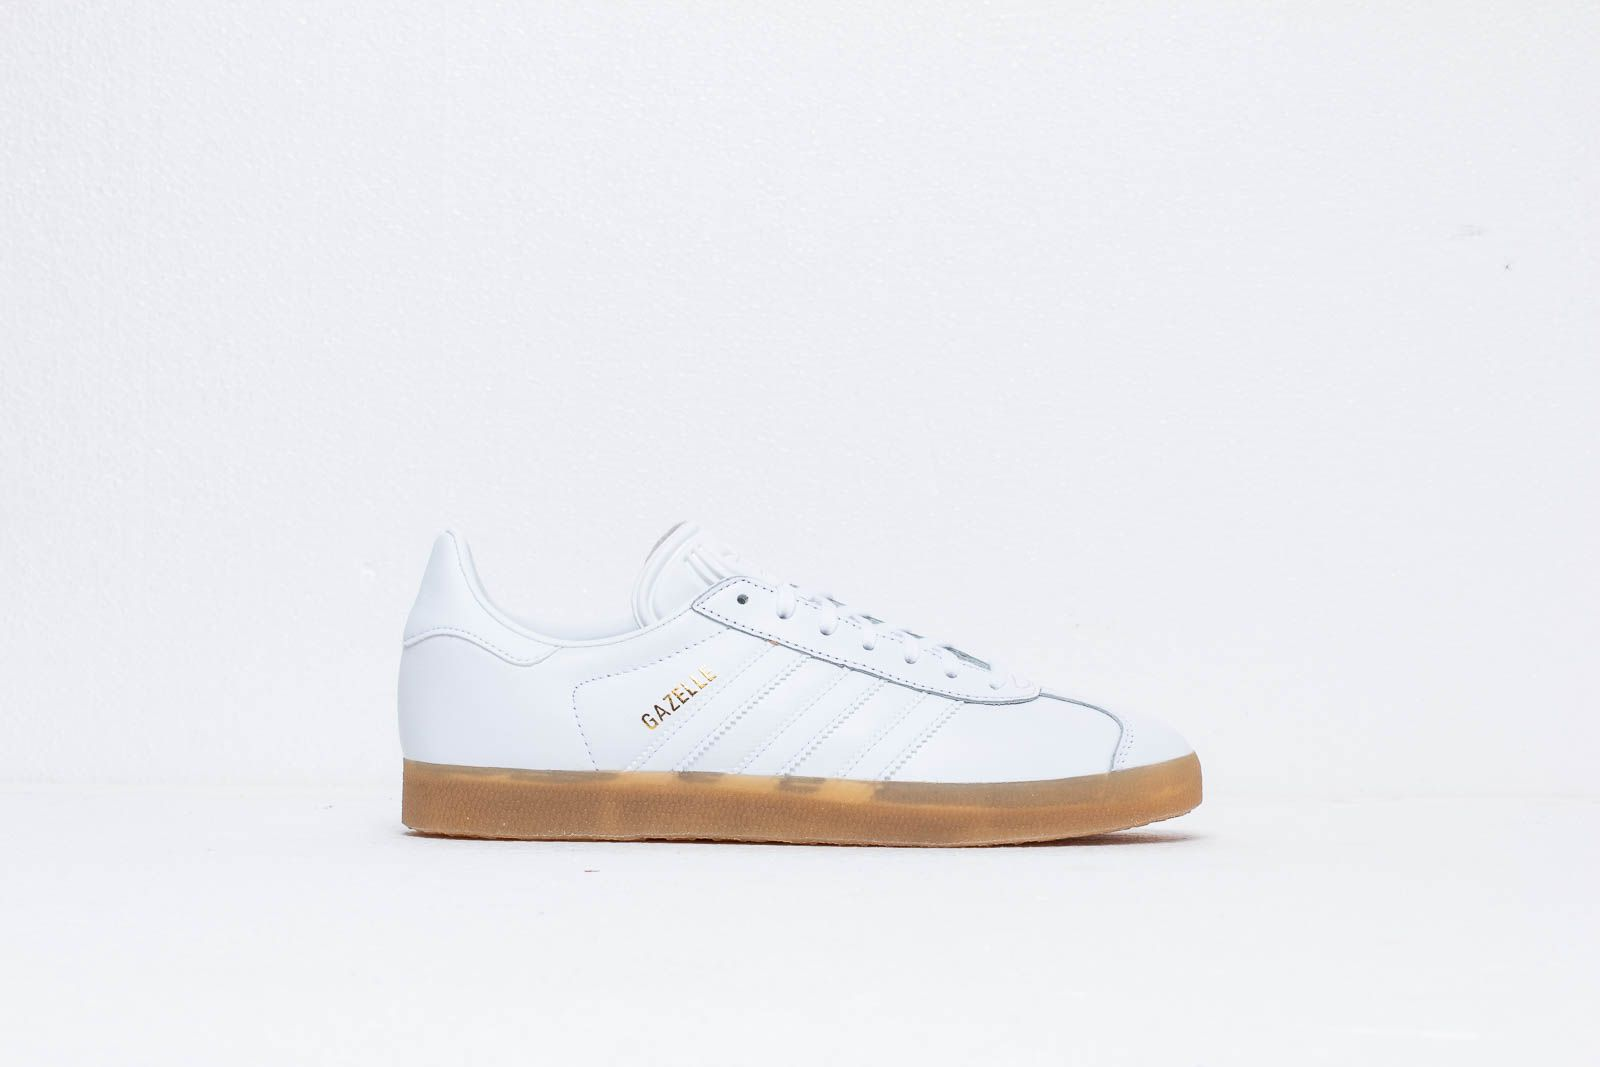 cheaper 372ea 3837a adidas Gazelle Ftw White  Ftw White  Gum4 at a great price £76 buy